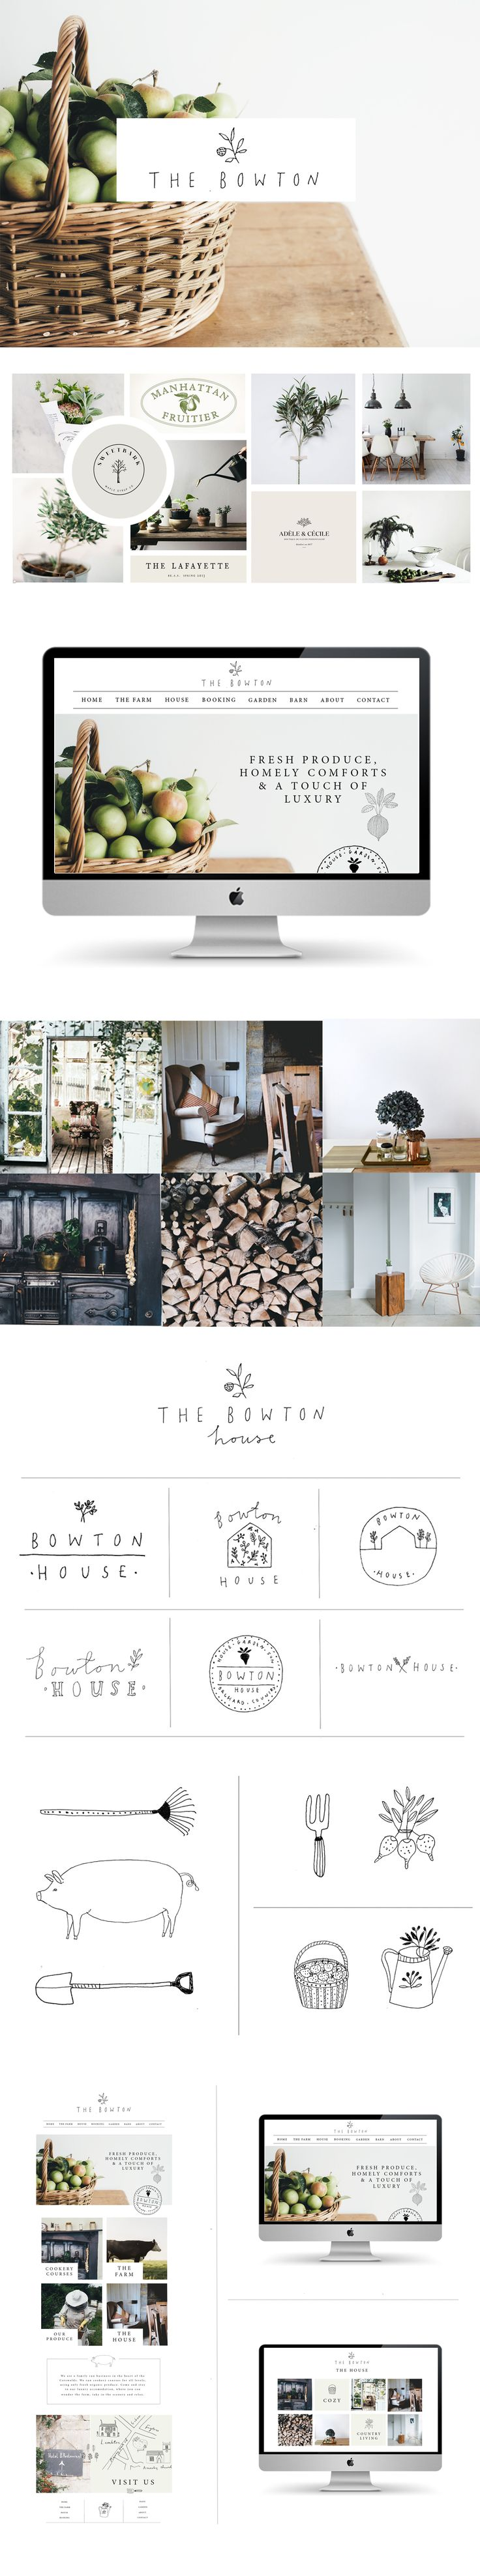 Website and branding by Ryn Frank www.rynfrankdesign.co.uk Love it and its a simple yet modern website.